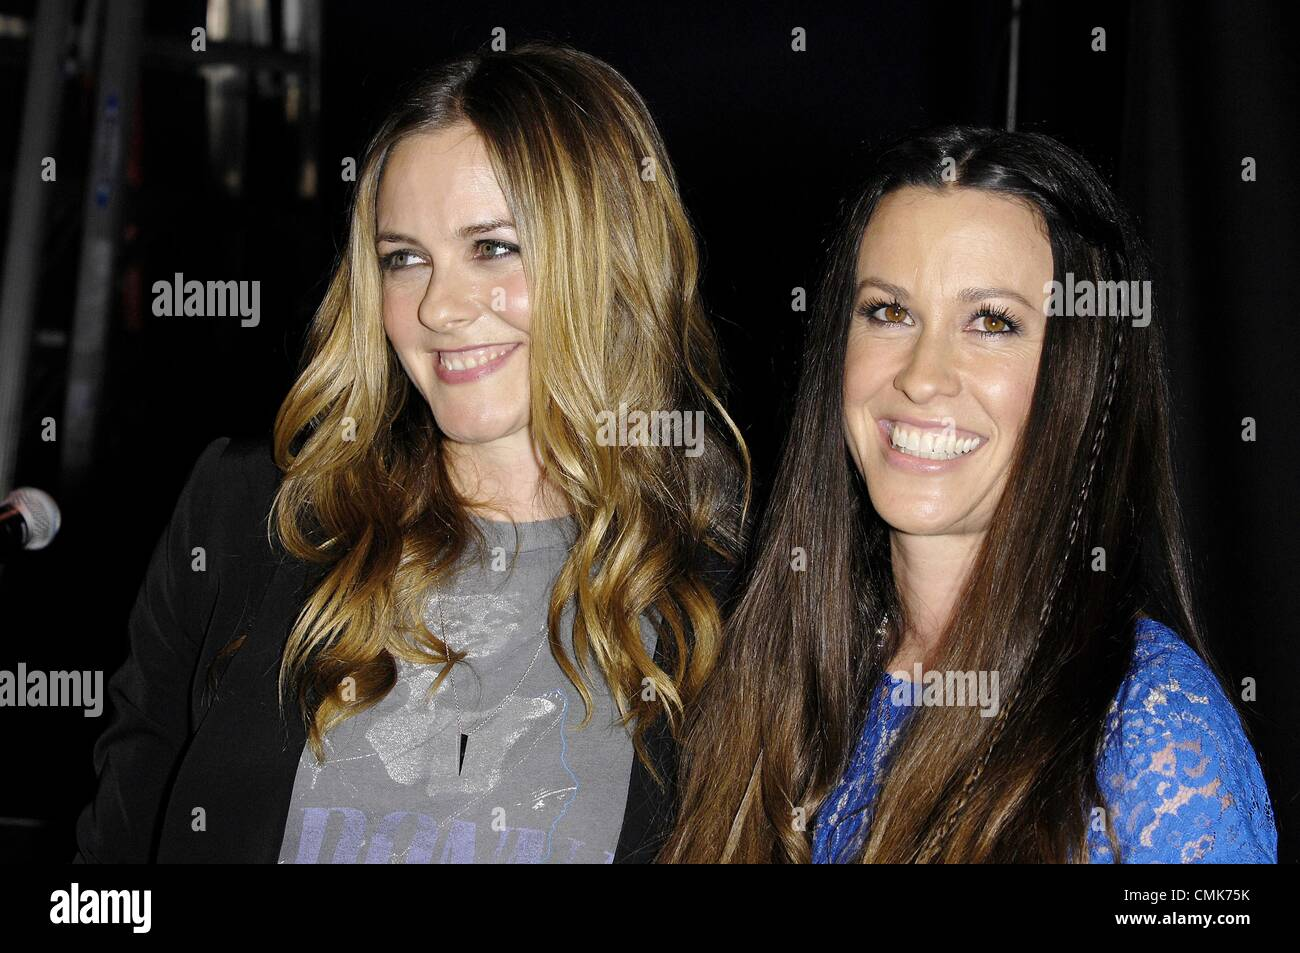 Fashion week 21 with questions alanis morissette for woman